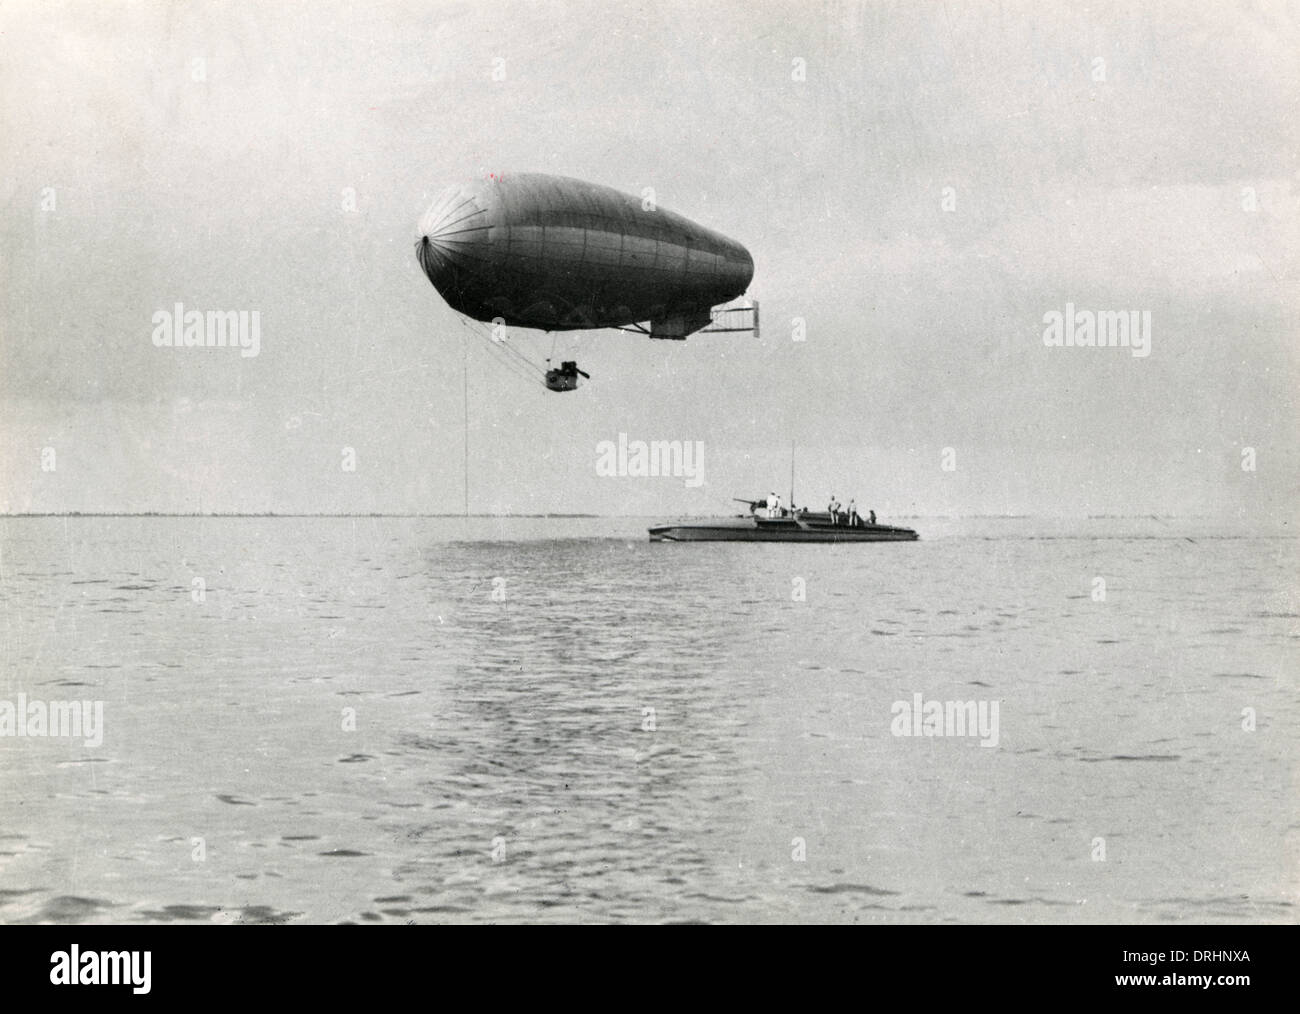 Italian MAS boat at sea with balloon attached - Stock Image